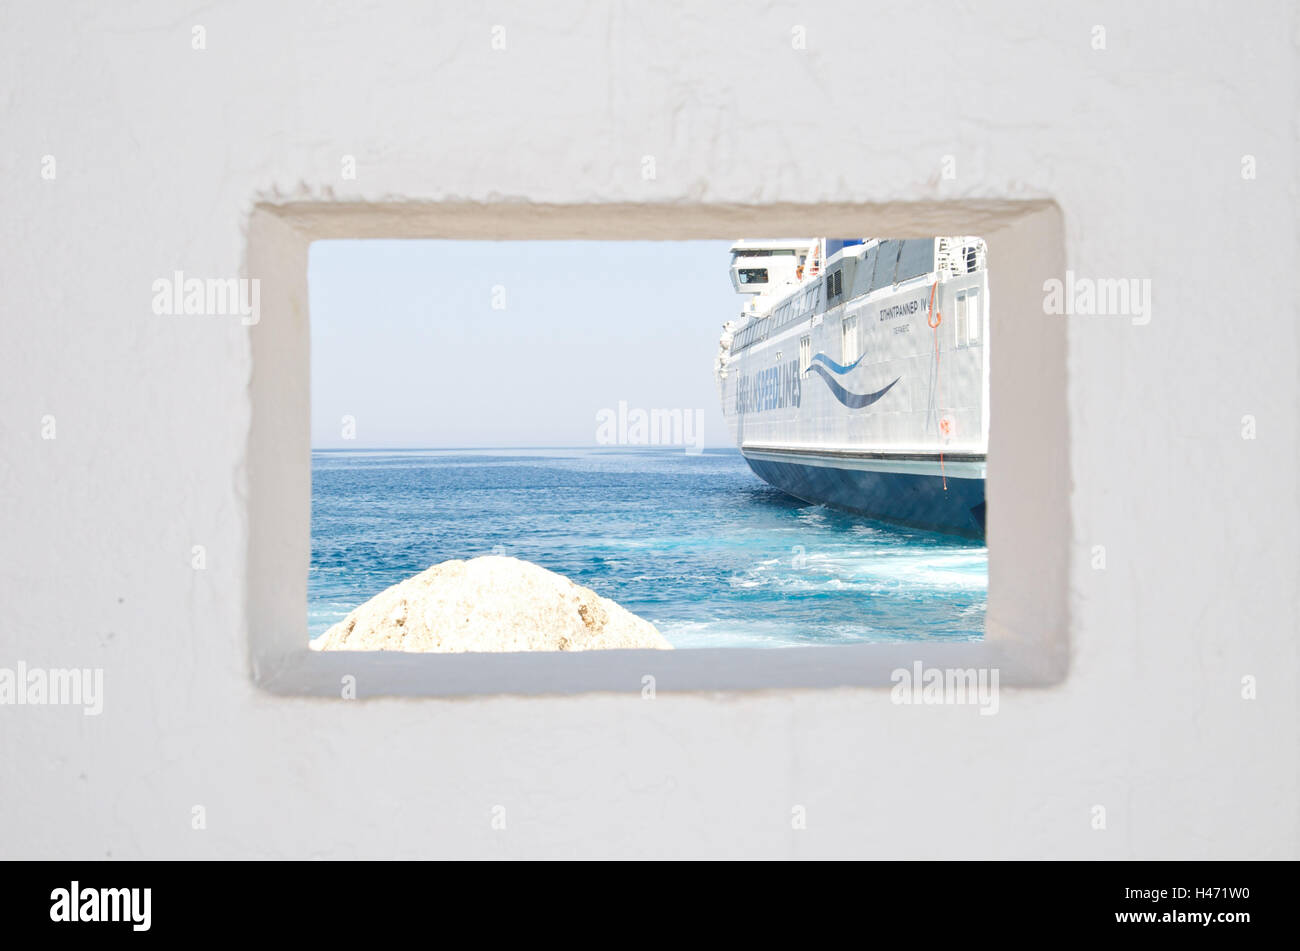 Greece, island Sifnos, harbour, ferry casting off, view through wall, Stock Photo